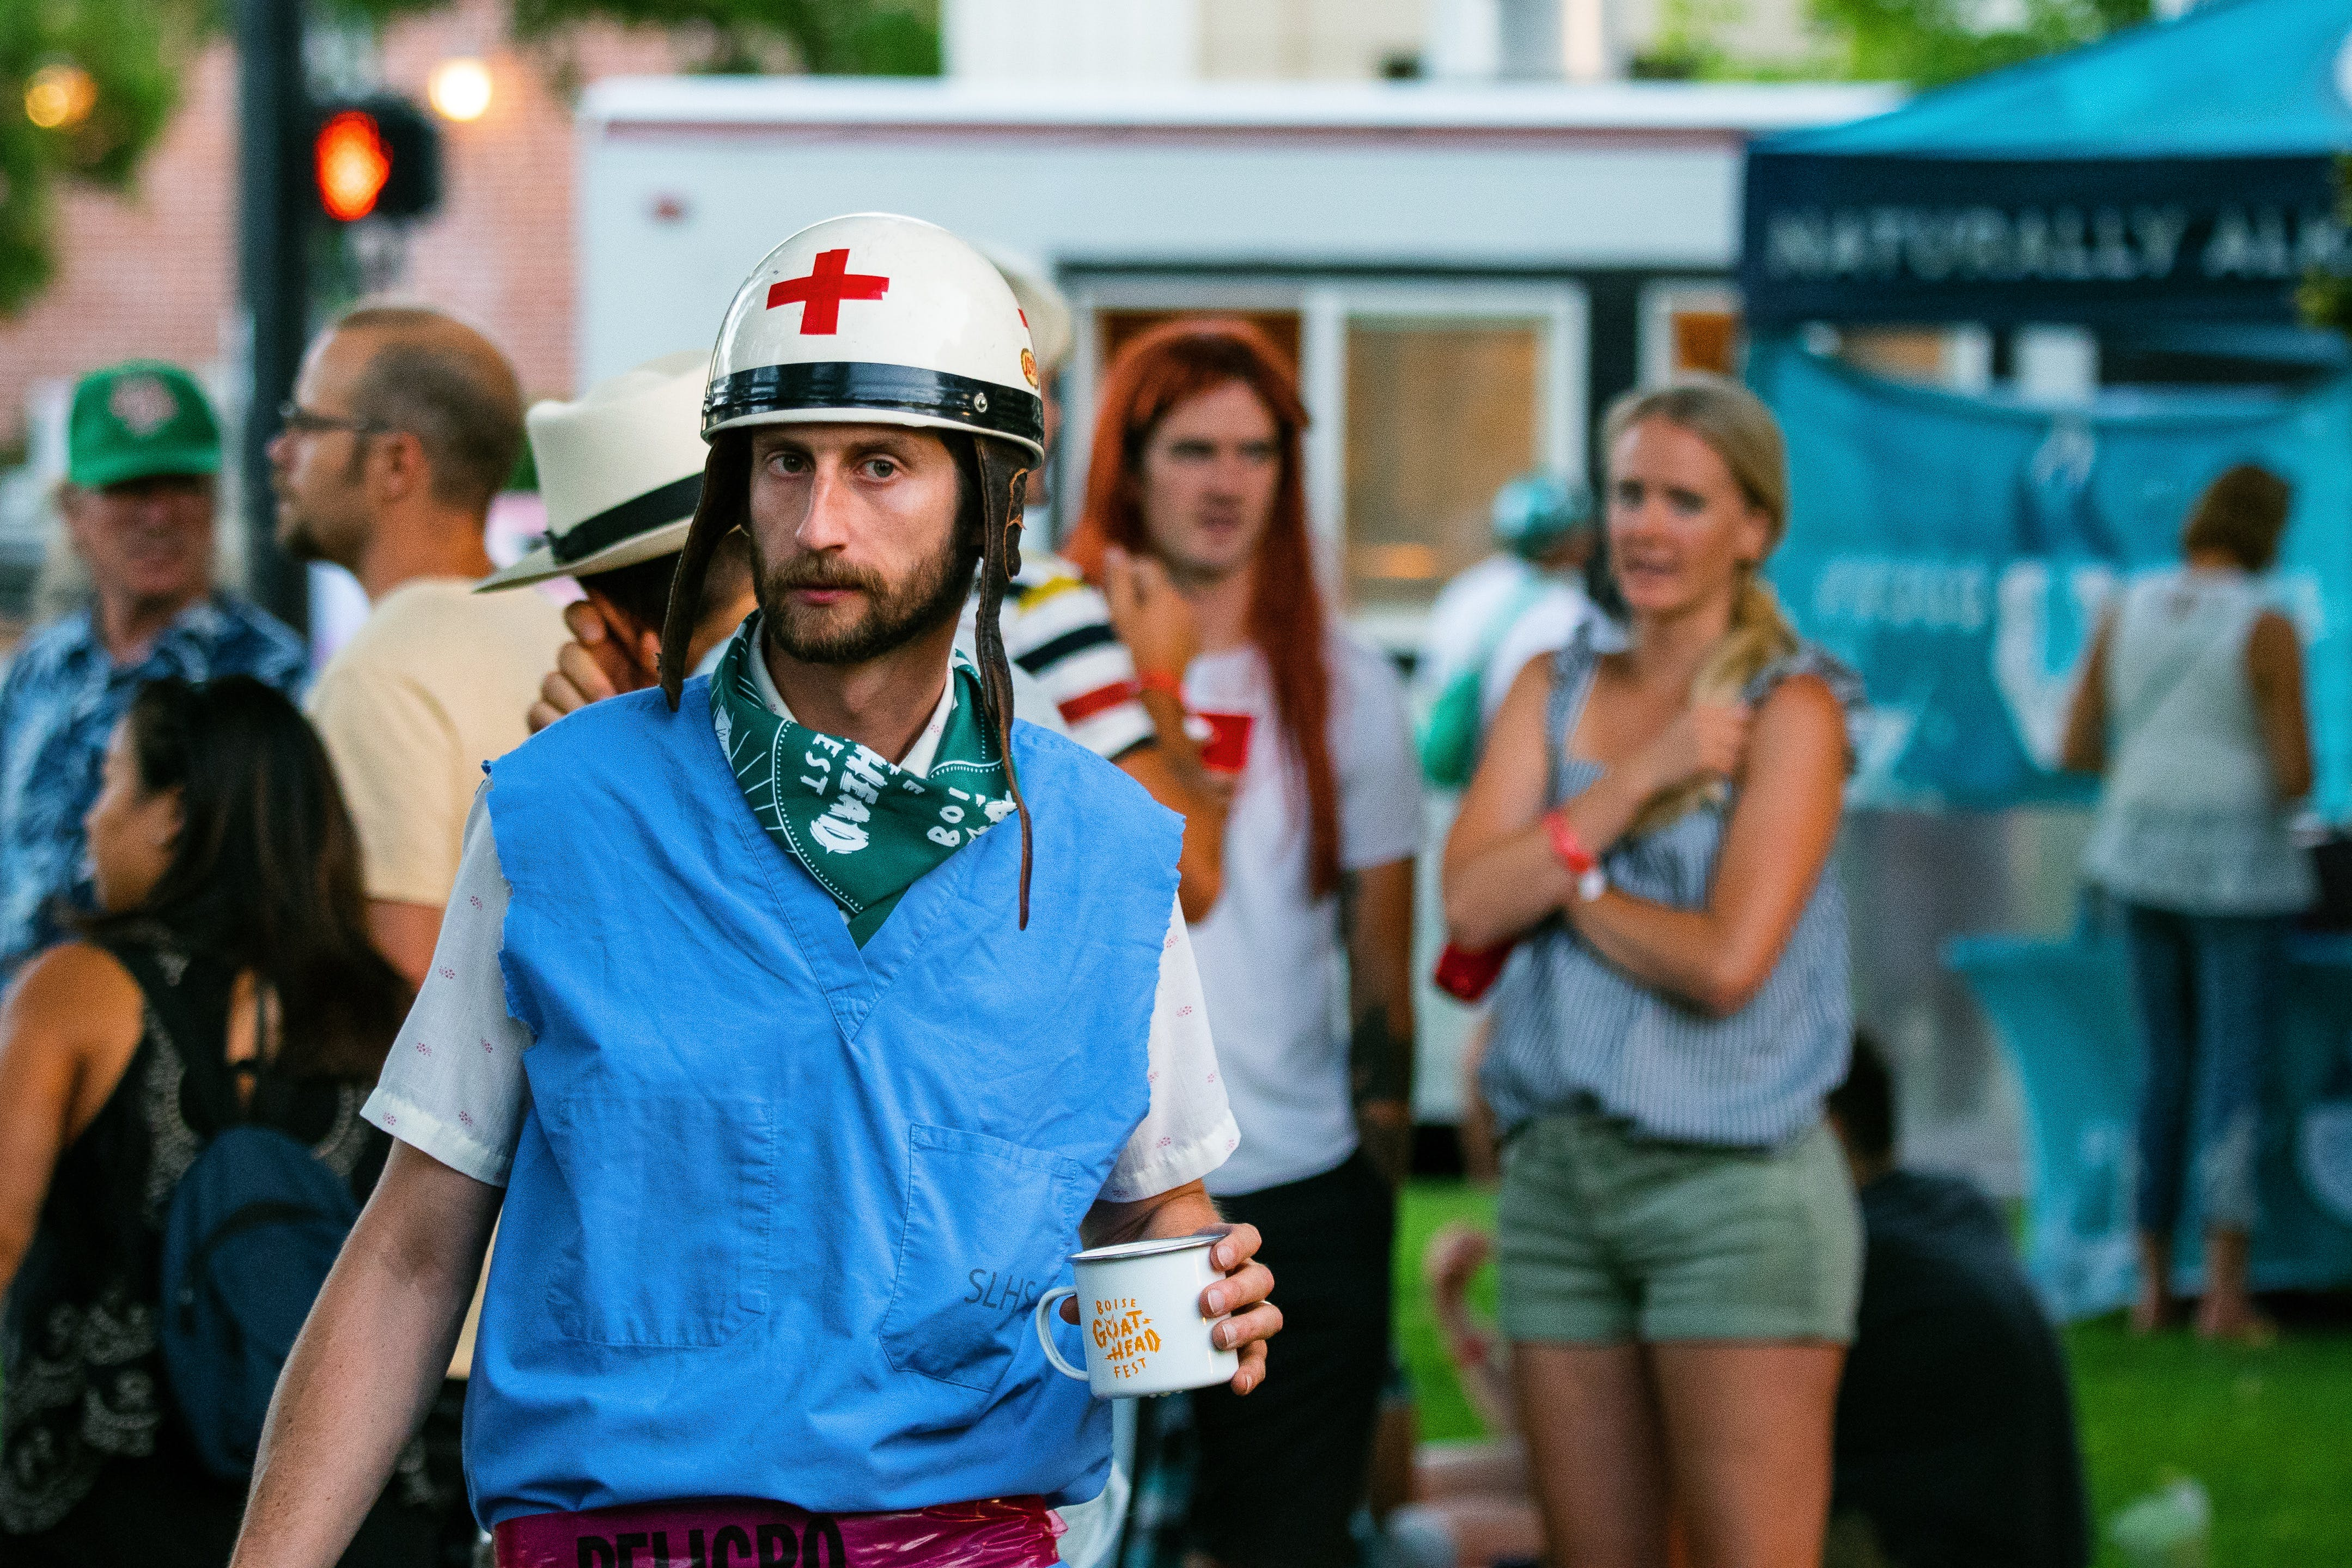 Man Holding Cup in a White Helmet with a Red Cross Near Group of People